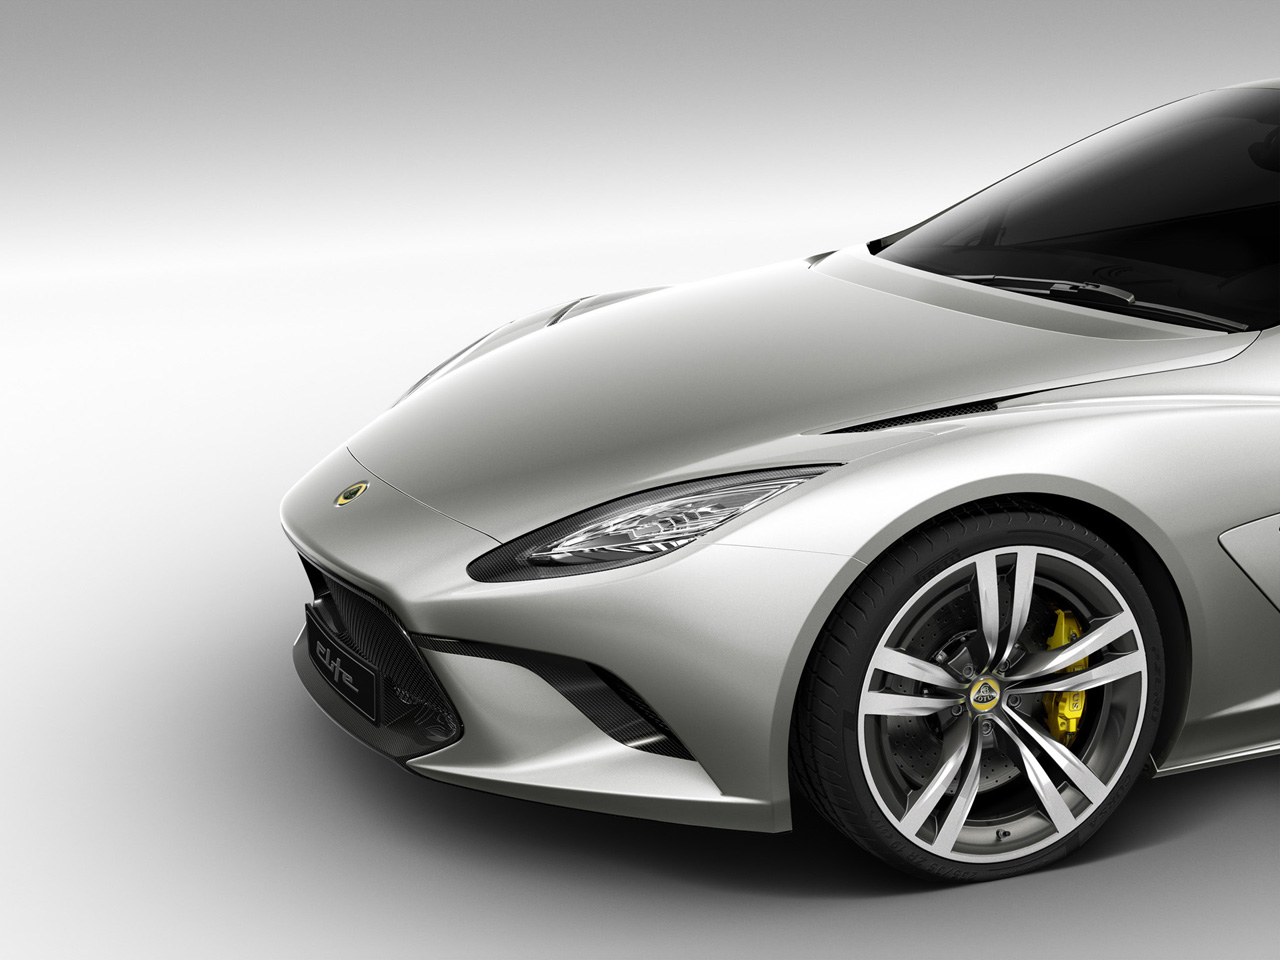 http://www.thesupercars.org/wp-content/uploads/2010/11/2014-Lotus-Elite-Renderings-Front-Sect.jpg